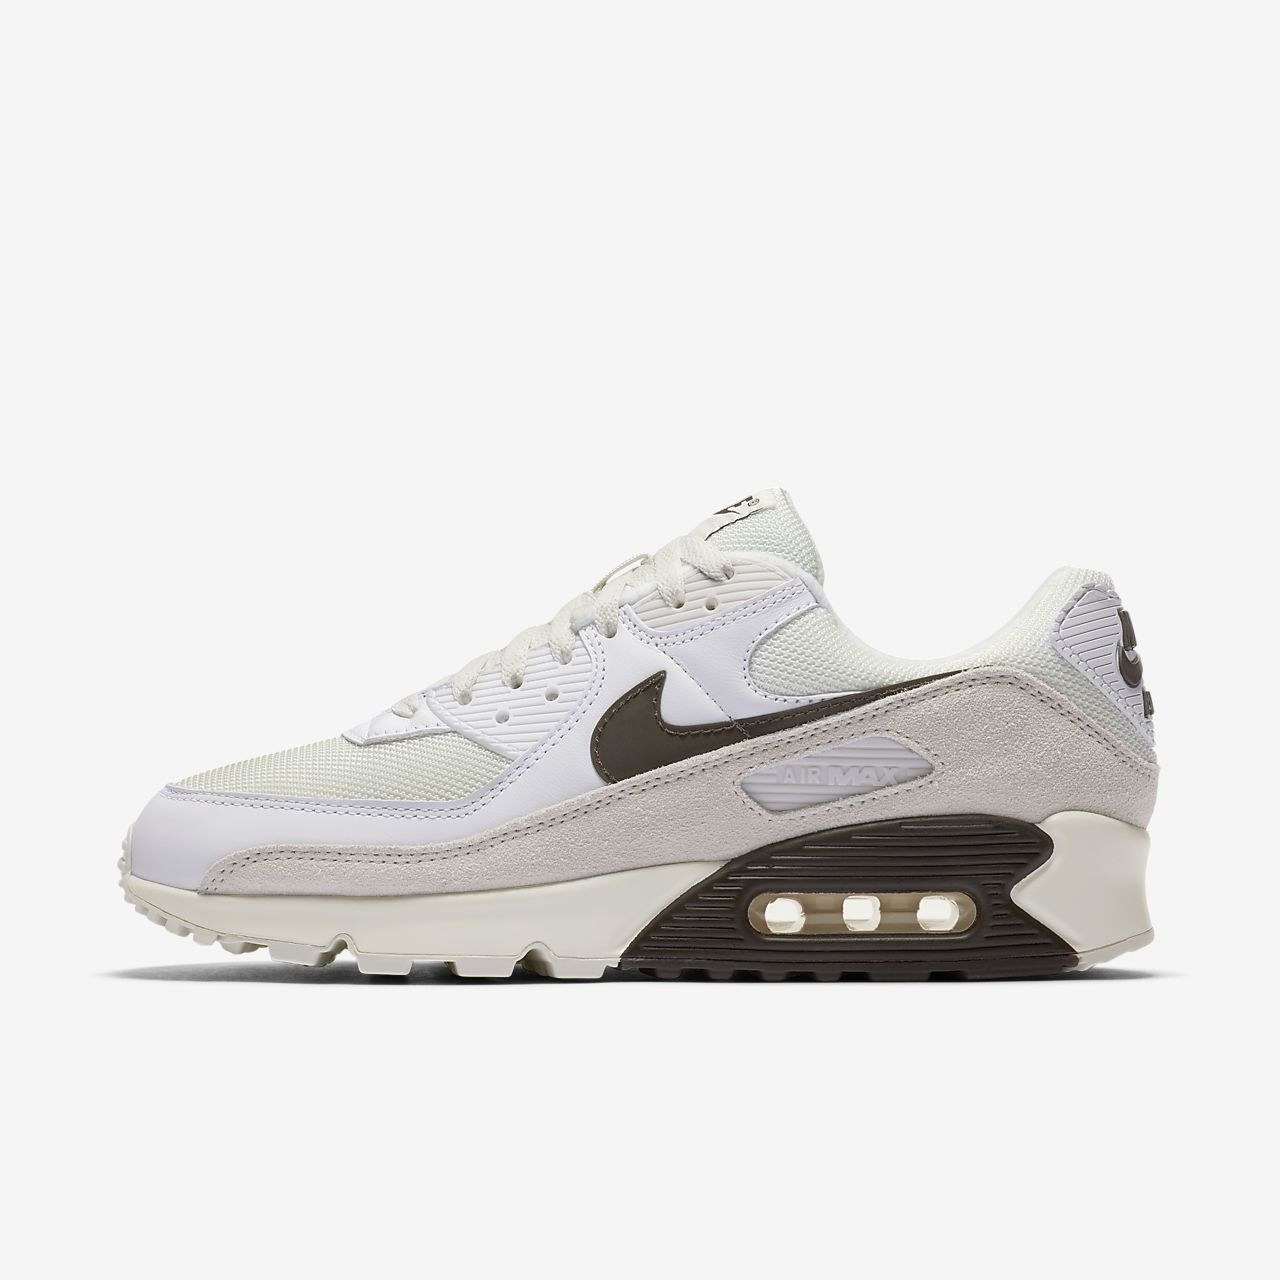 Chaussure Nike Air Max 90 pour Homme